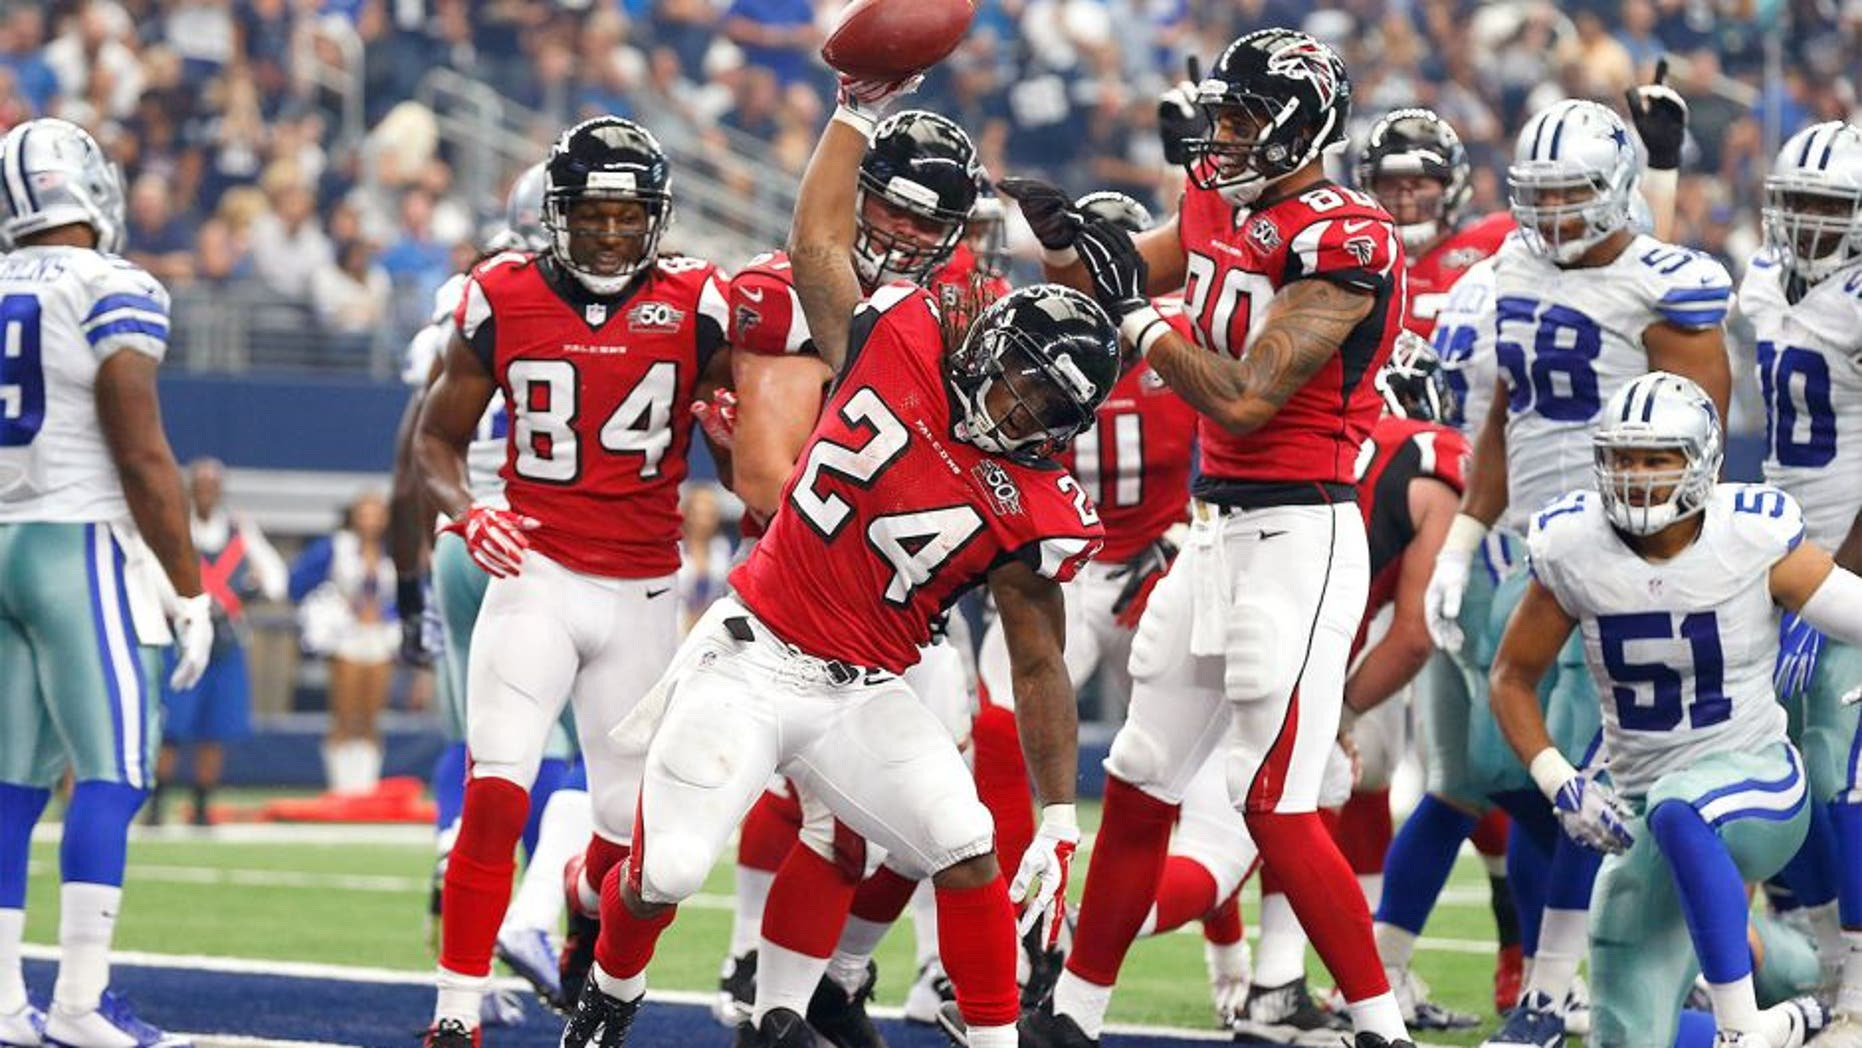 Sep 27, 2015; Arlington, TX, USA; Atlanta Falcons running back Devonta Freeman (24) spikes the ball after scoring a touchdown in the second quarter against the Dallas Cowboys at AT&T Stadium. Mandatory Credit: Matthew Emmons-USA TODAY Sports